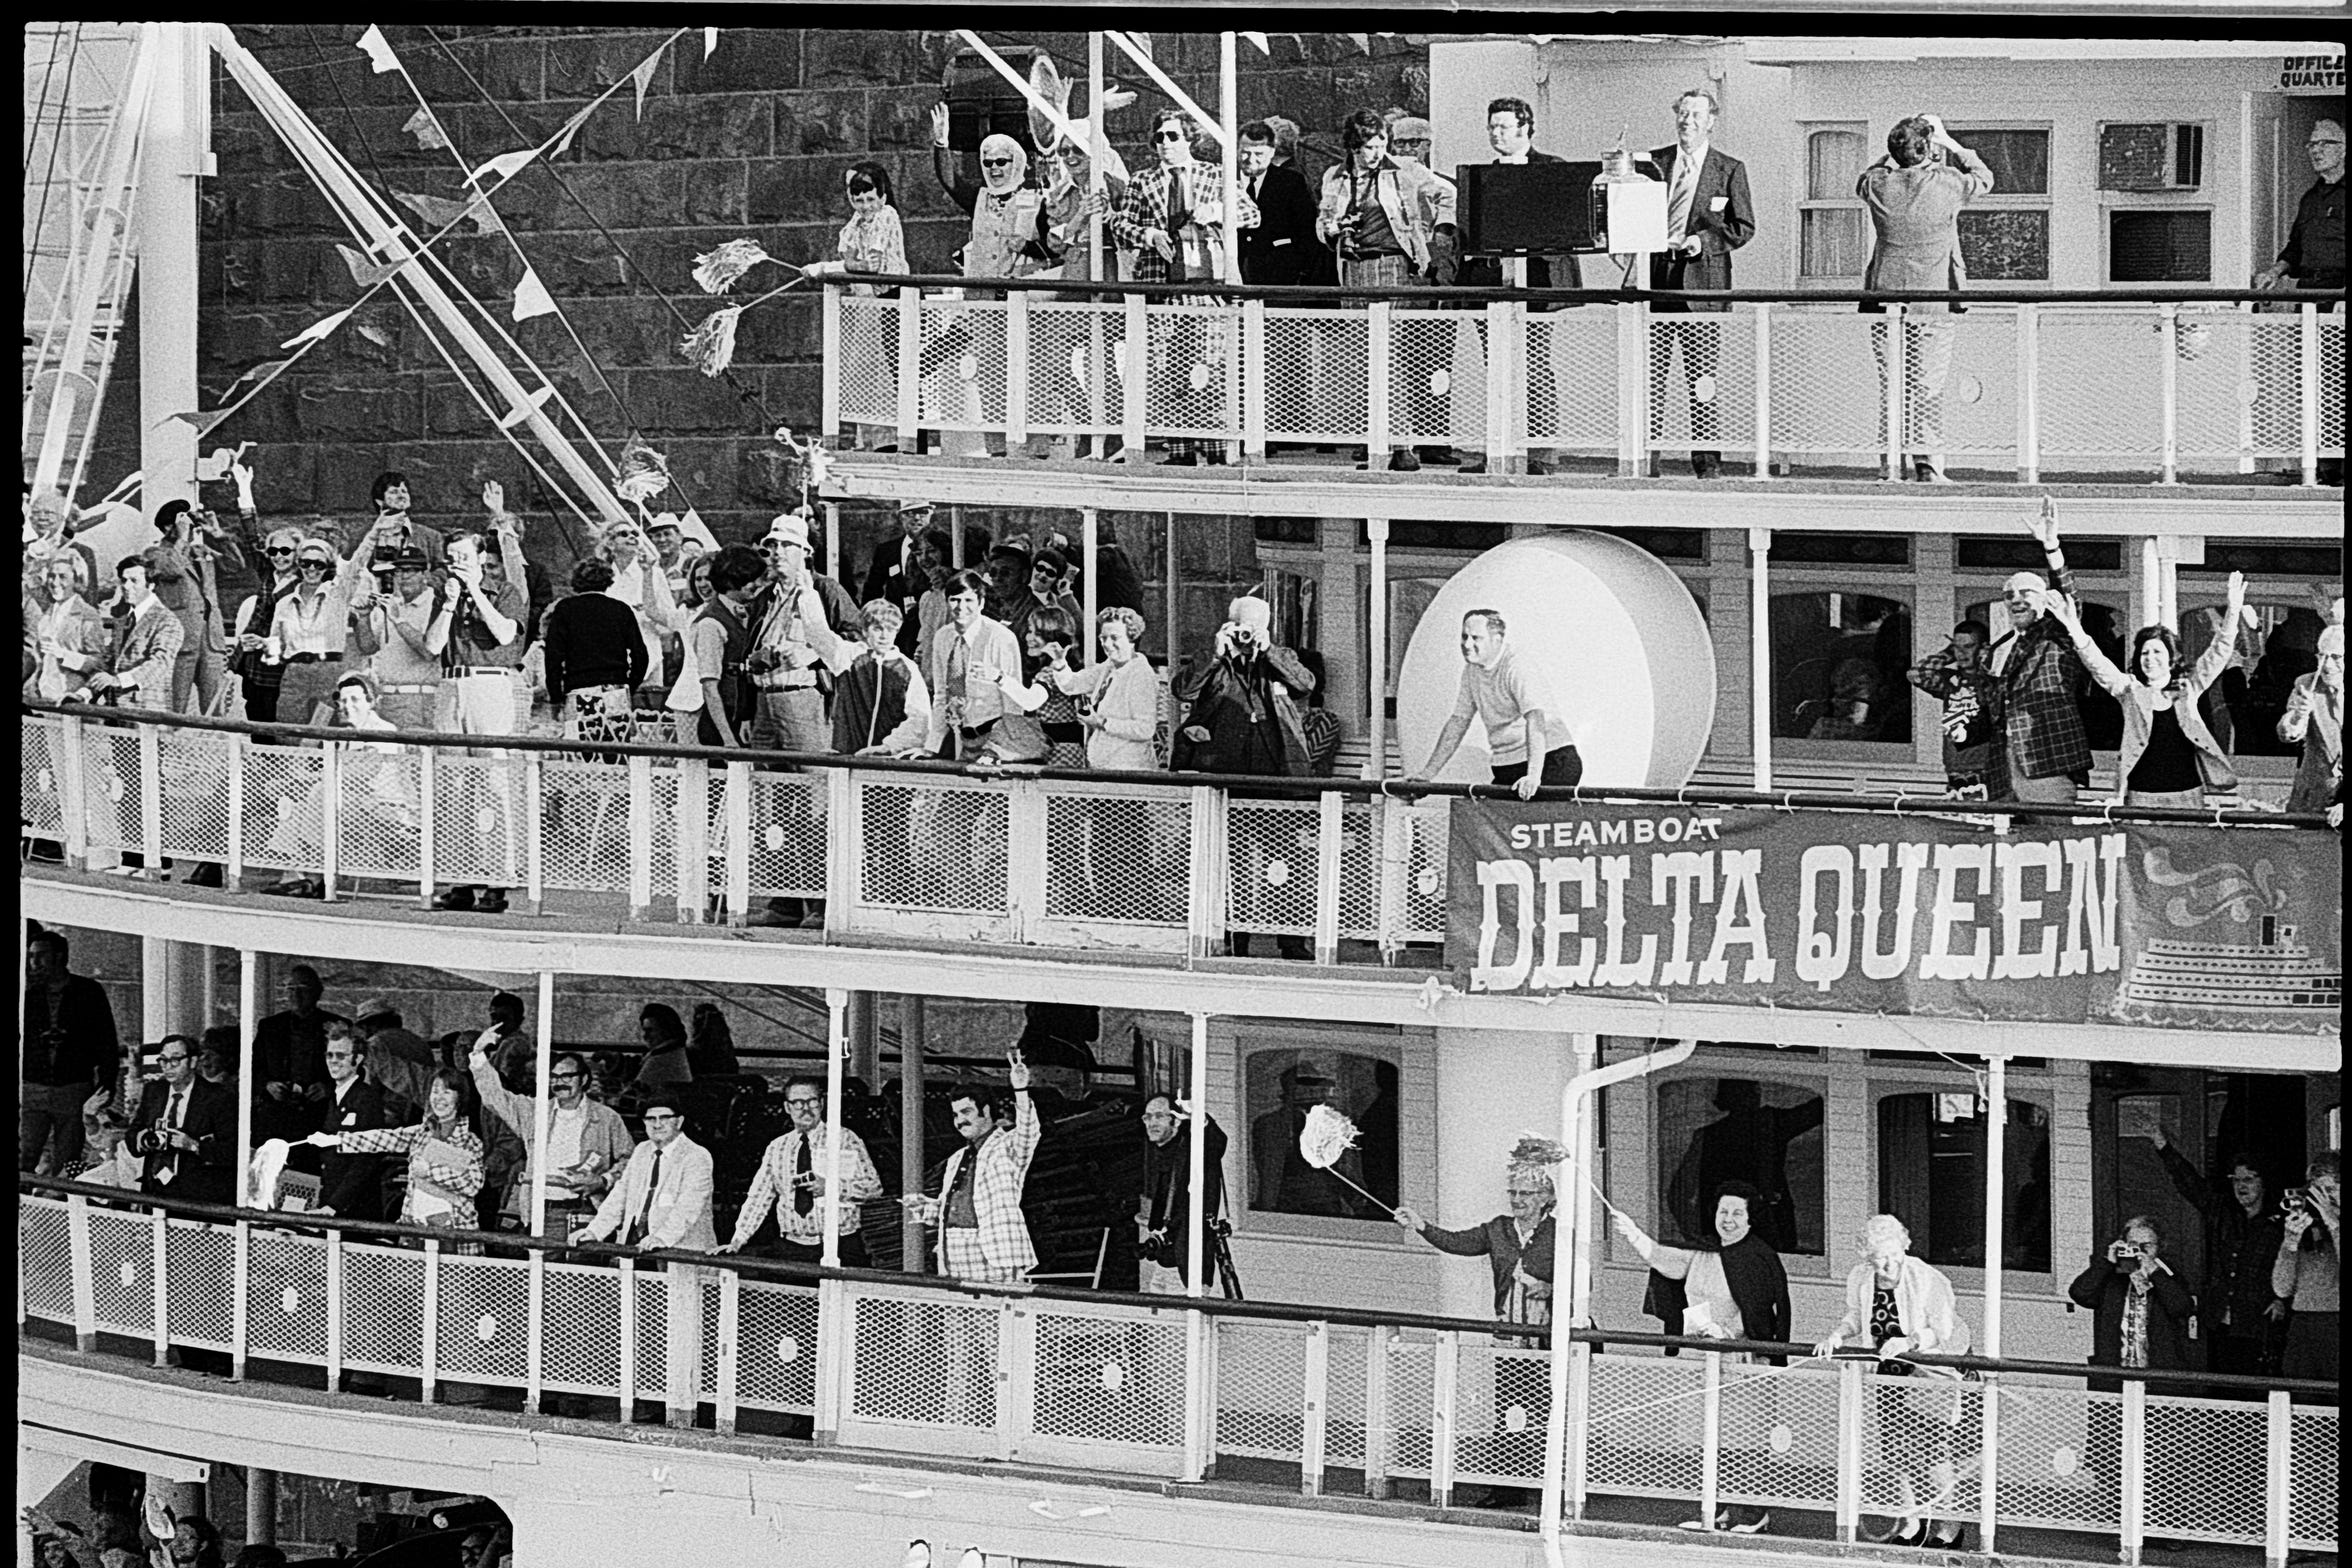 The Delta Queen returned to the Fourth Street wharf after a victorious race against the Belle of Louisville. A young Mike Berry can be seen waving a pom pom on the middle deck in a two-tone jacket. May 2, 1973